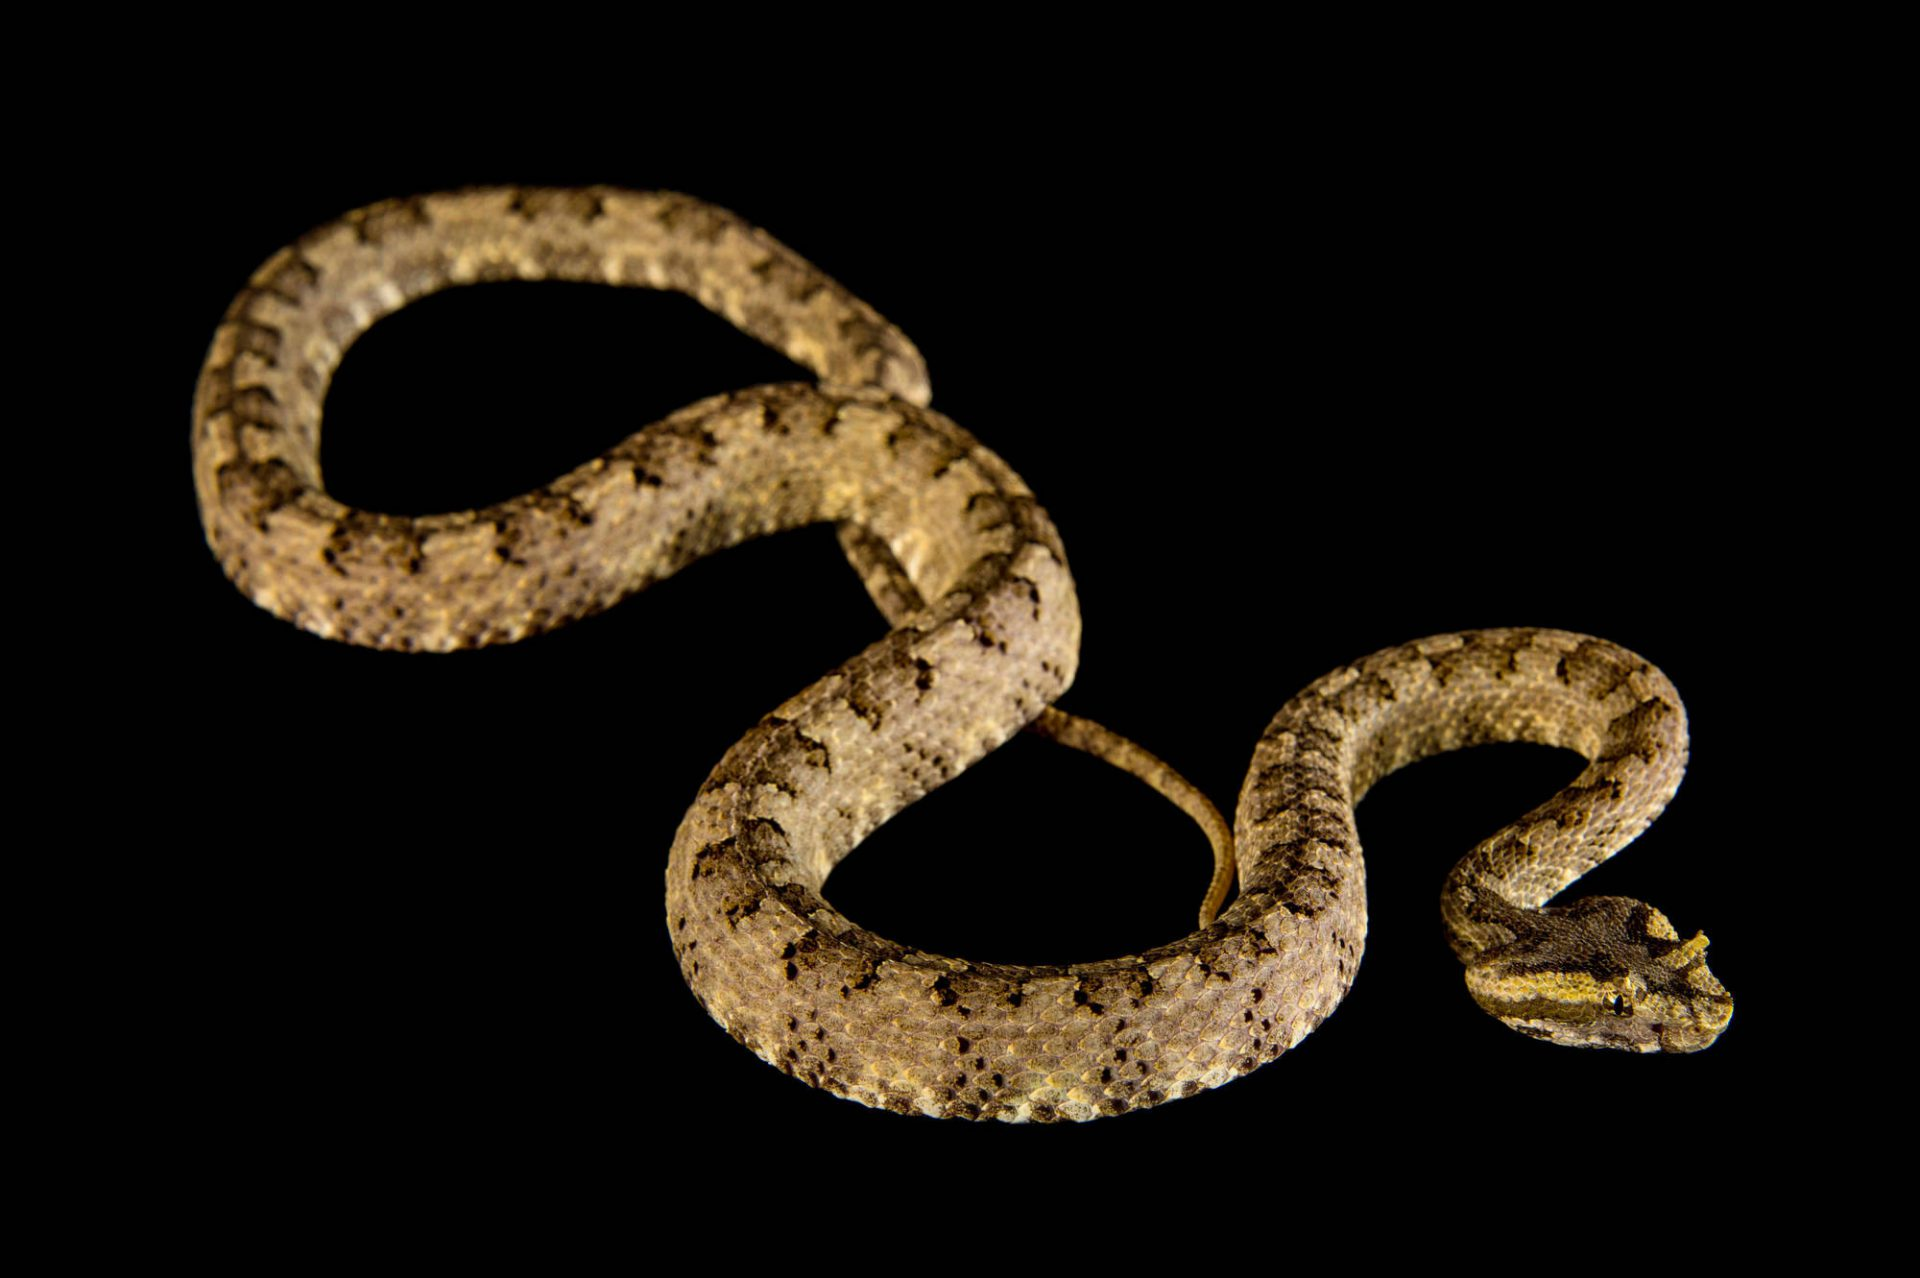 Picture of a Vietnamese eyelash viper or horned pit viper (Protobothrops cornutus) at the St. Louis Zoo.